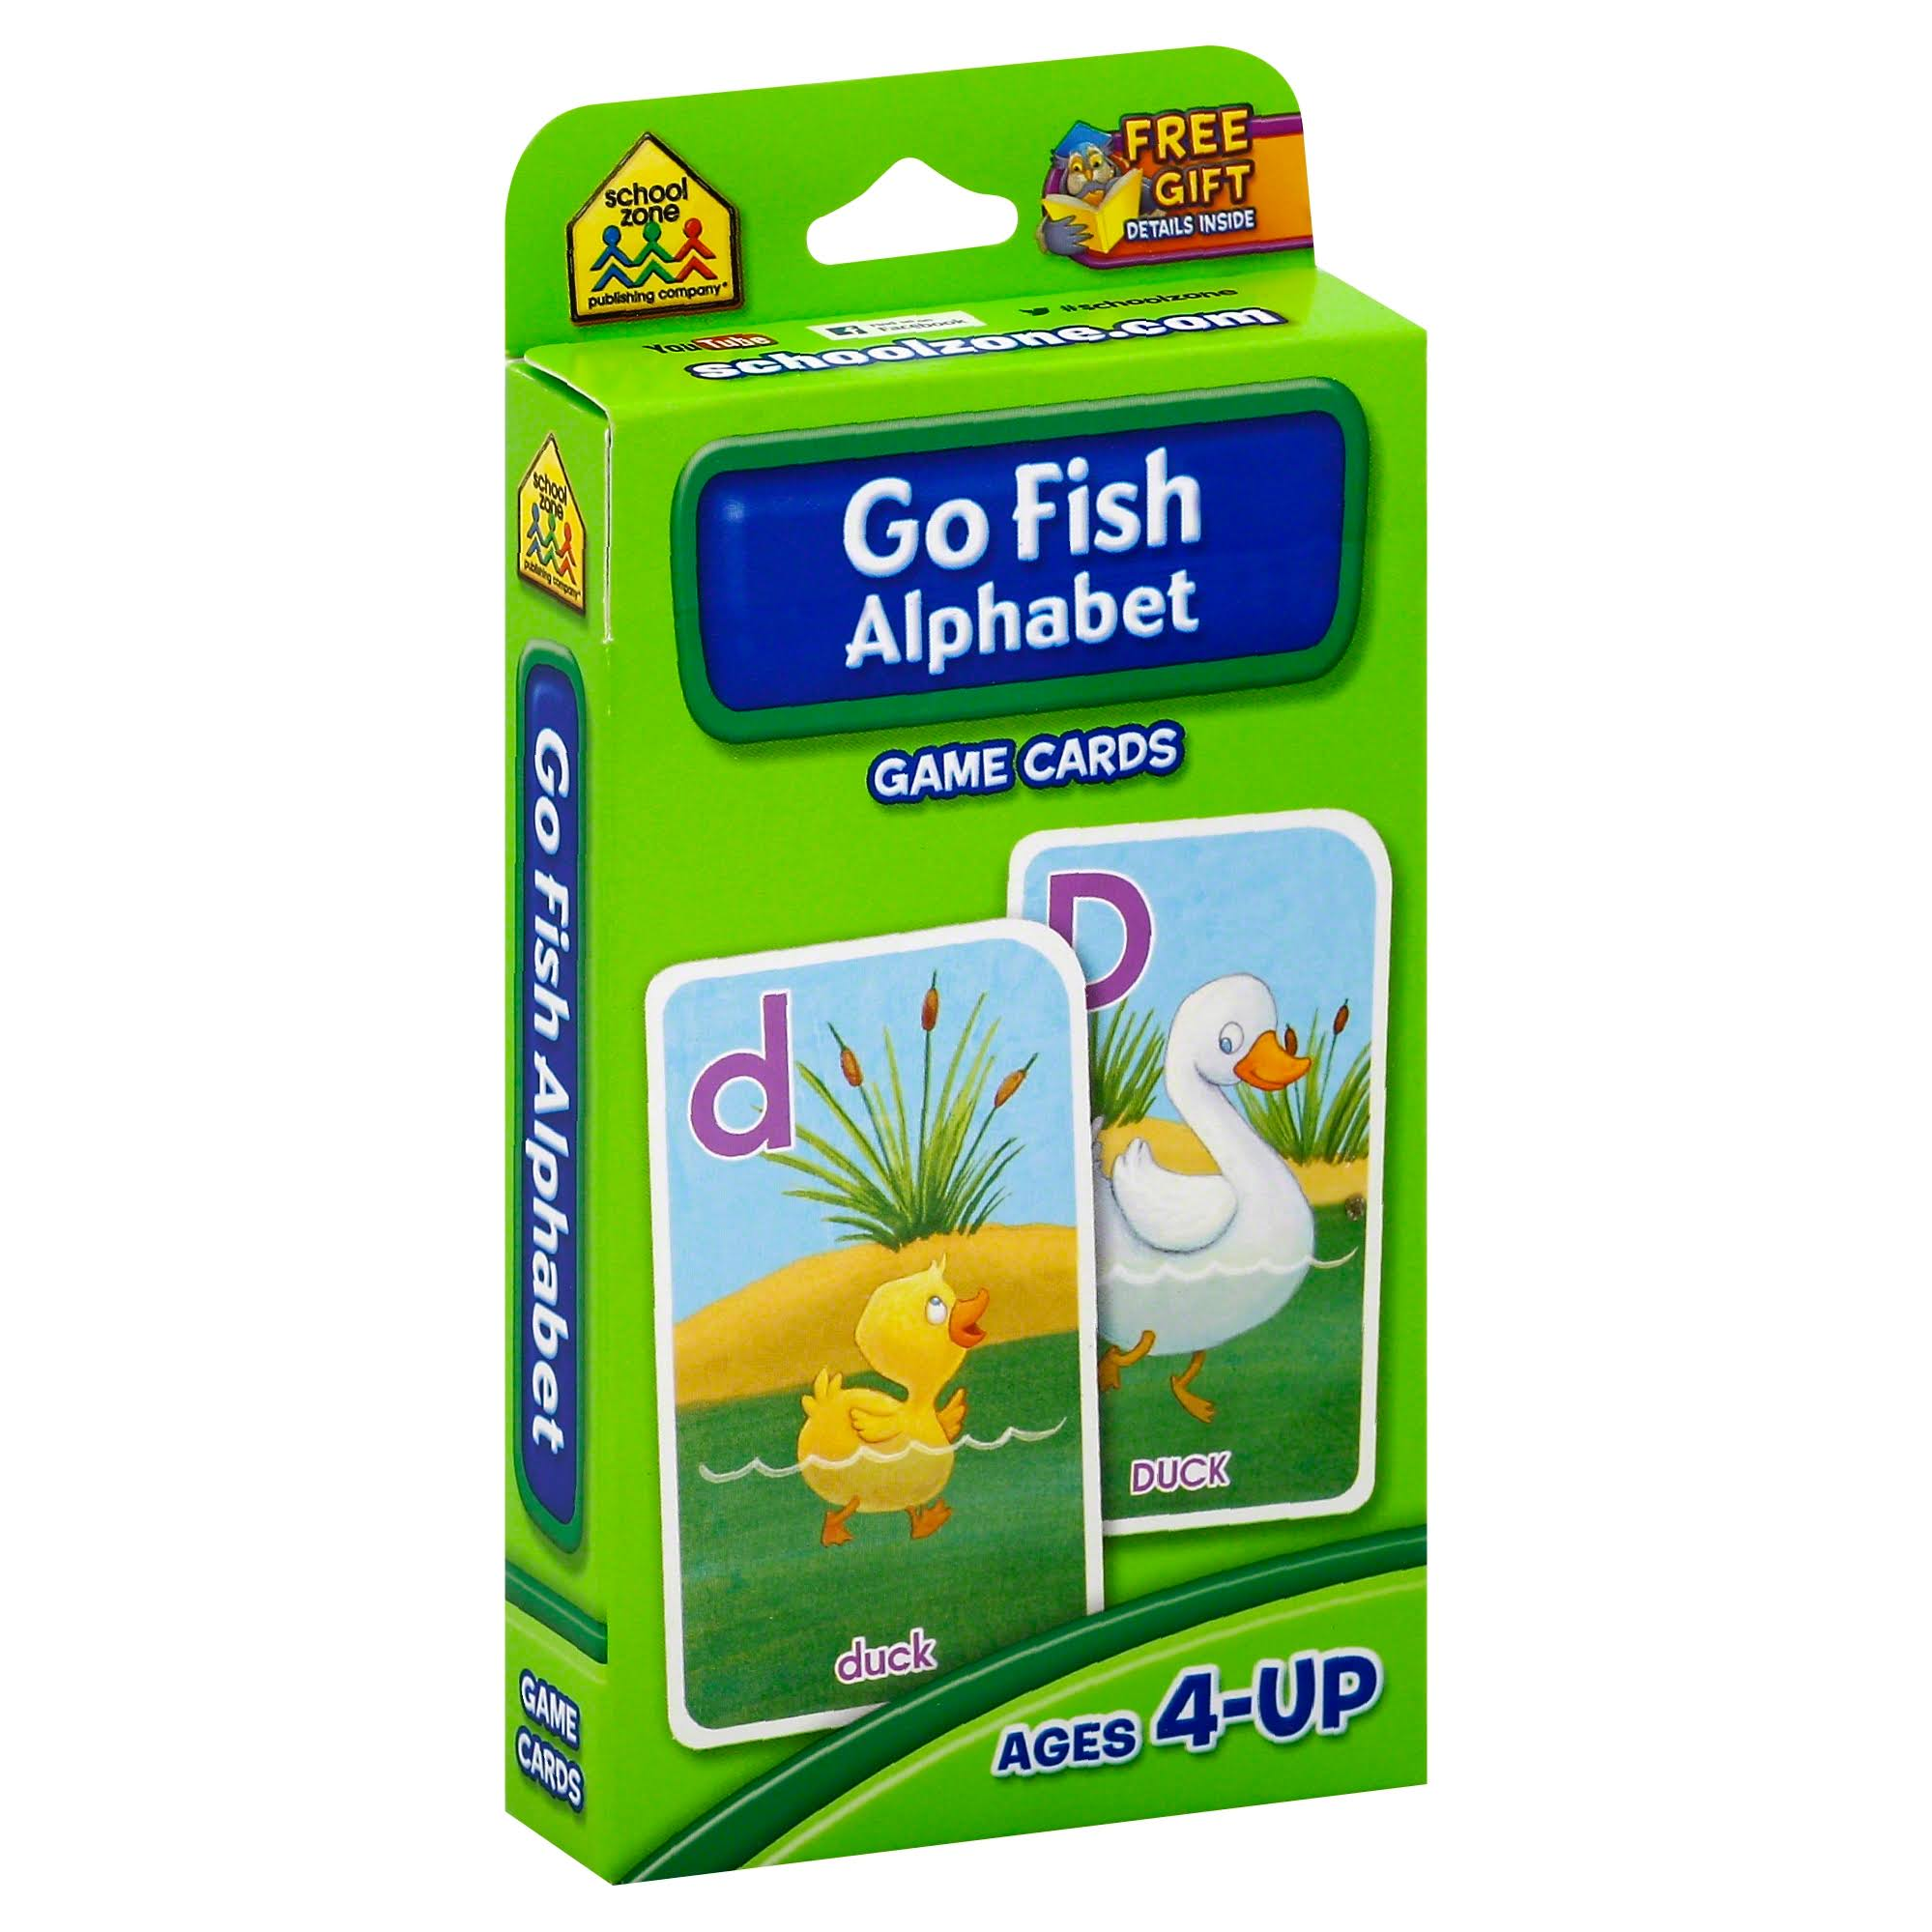 Go Fish Alphabet Game Cards